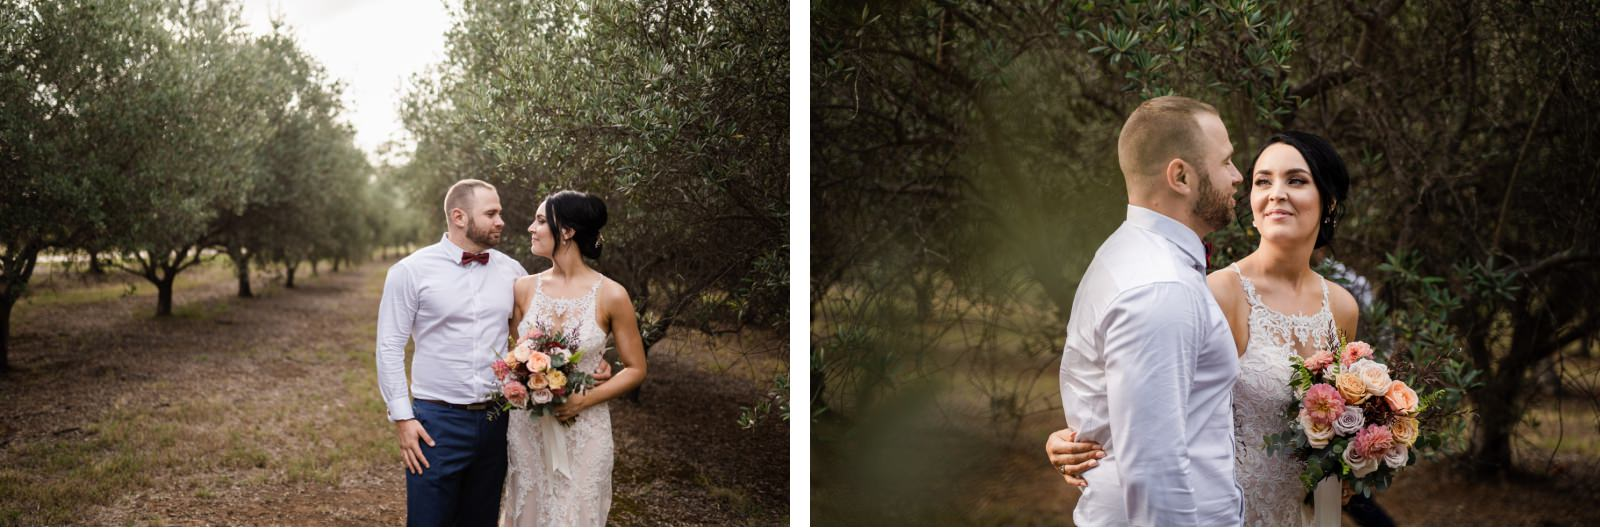 wandin-valley-estate-winery-lovedale-wedding-hunter-valley-wedding-photographer-48